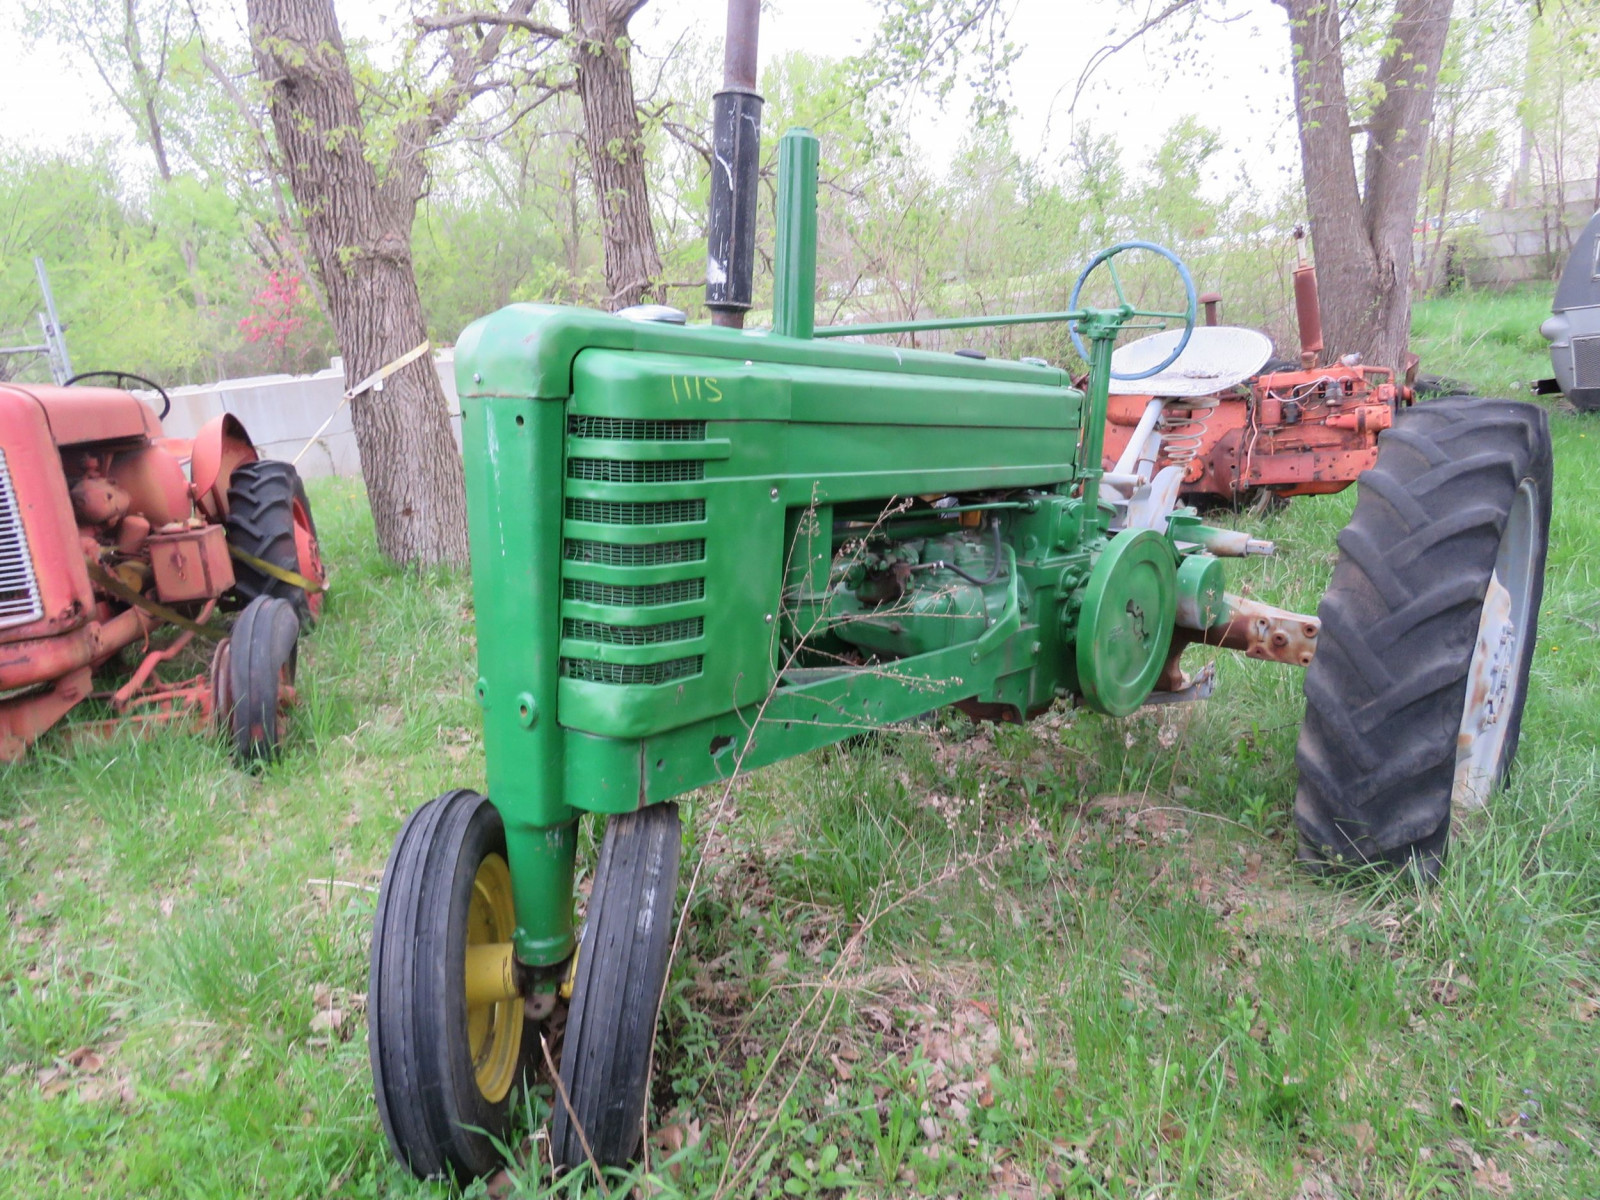 Styled John Deere B Tractor - Image 1